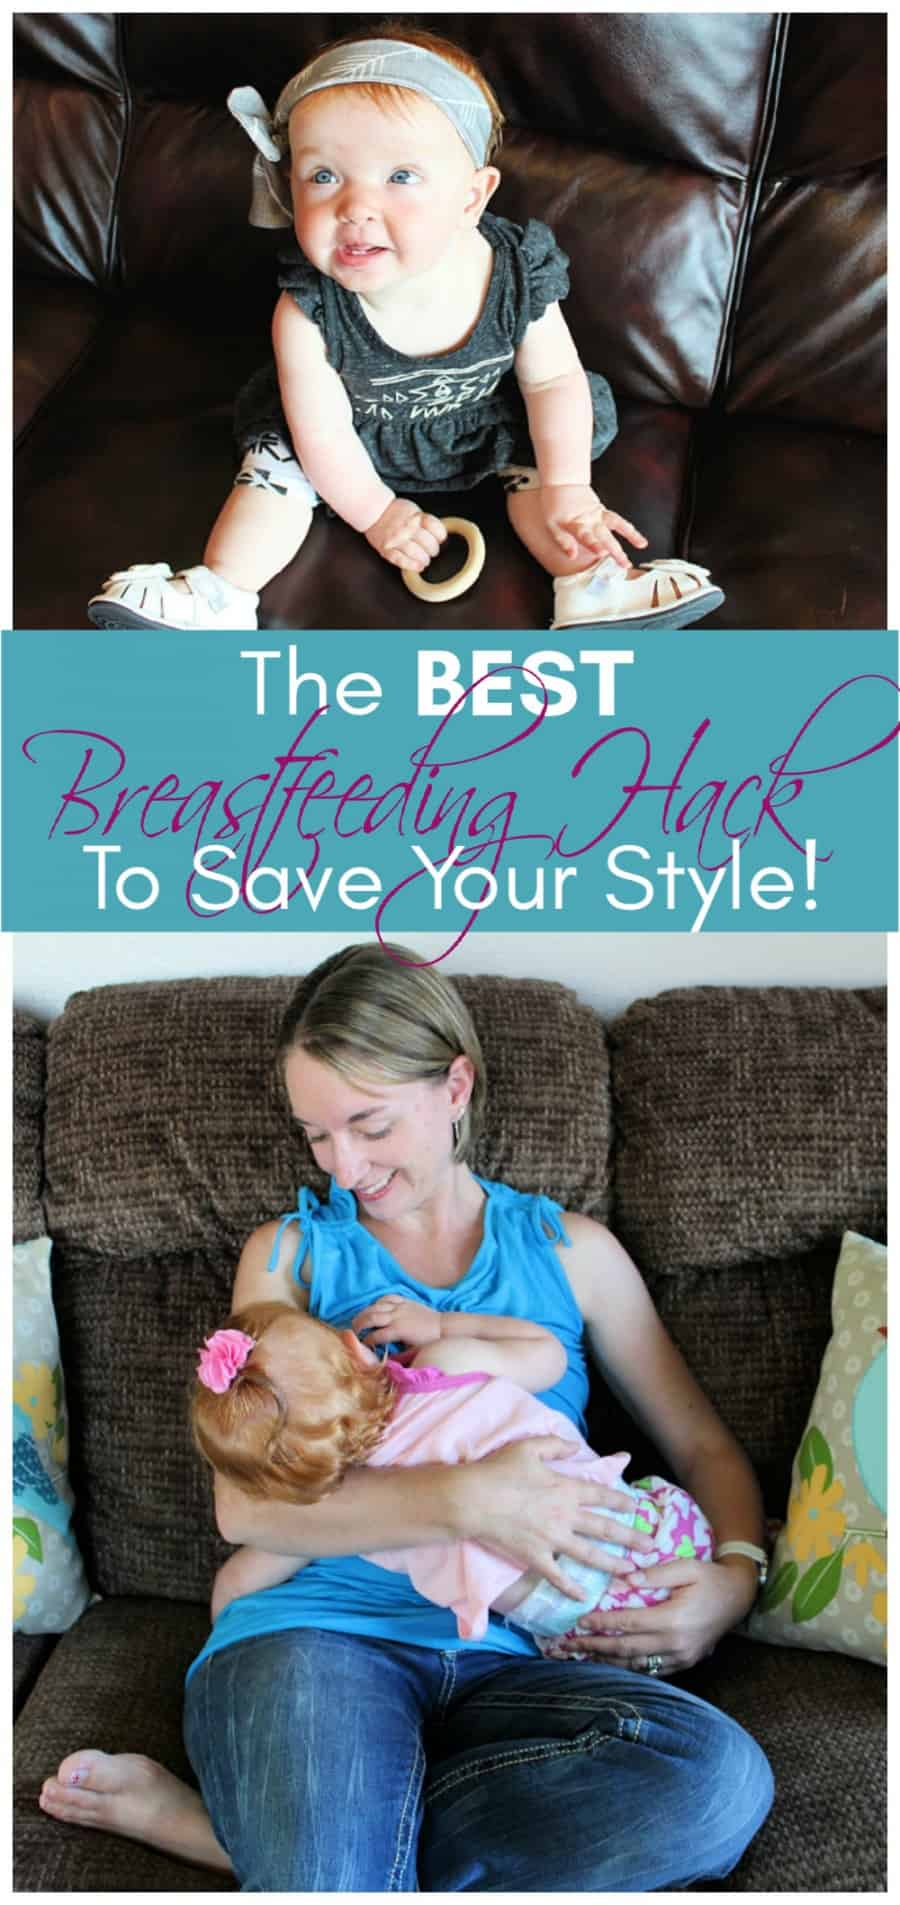 Breastfeeding Collage - The BEST Breastfeeding Hack That Will Save Your Style